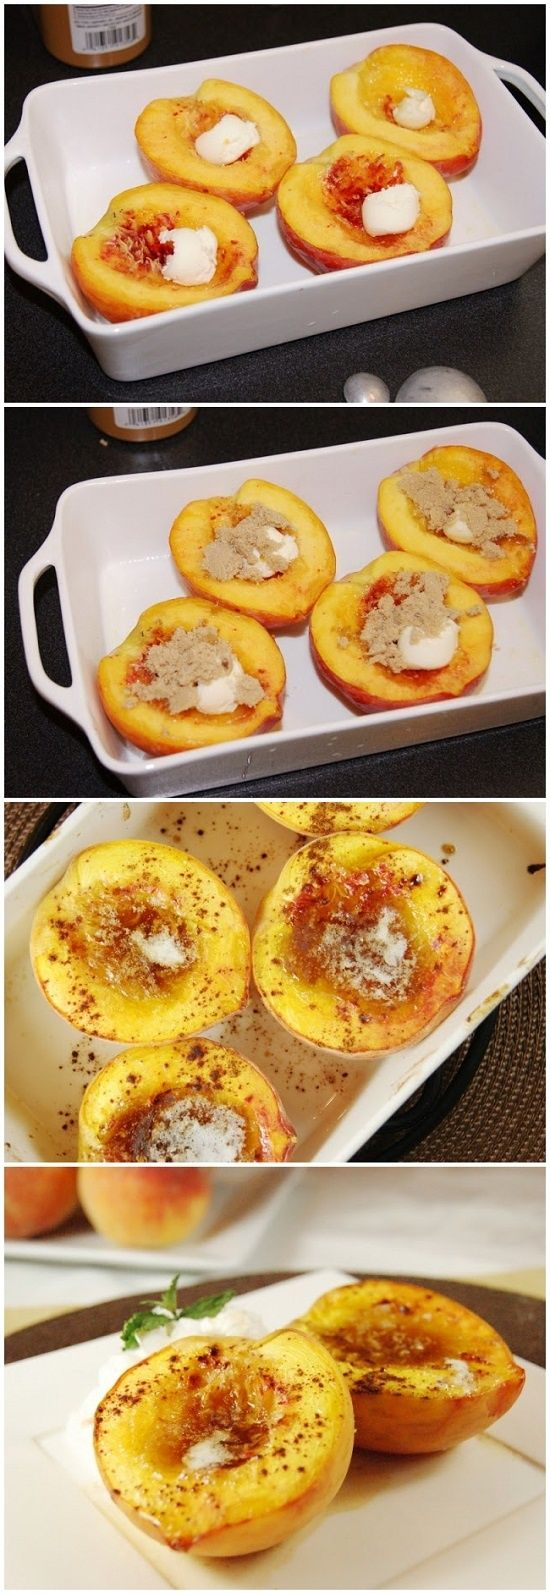 Brown Sugar Baked Peaches. Better than #handmade ice cream #home depot #snap your fingers #handmade gift bags